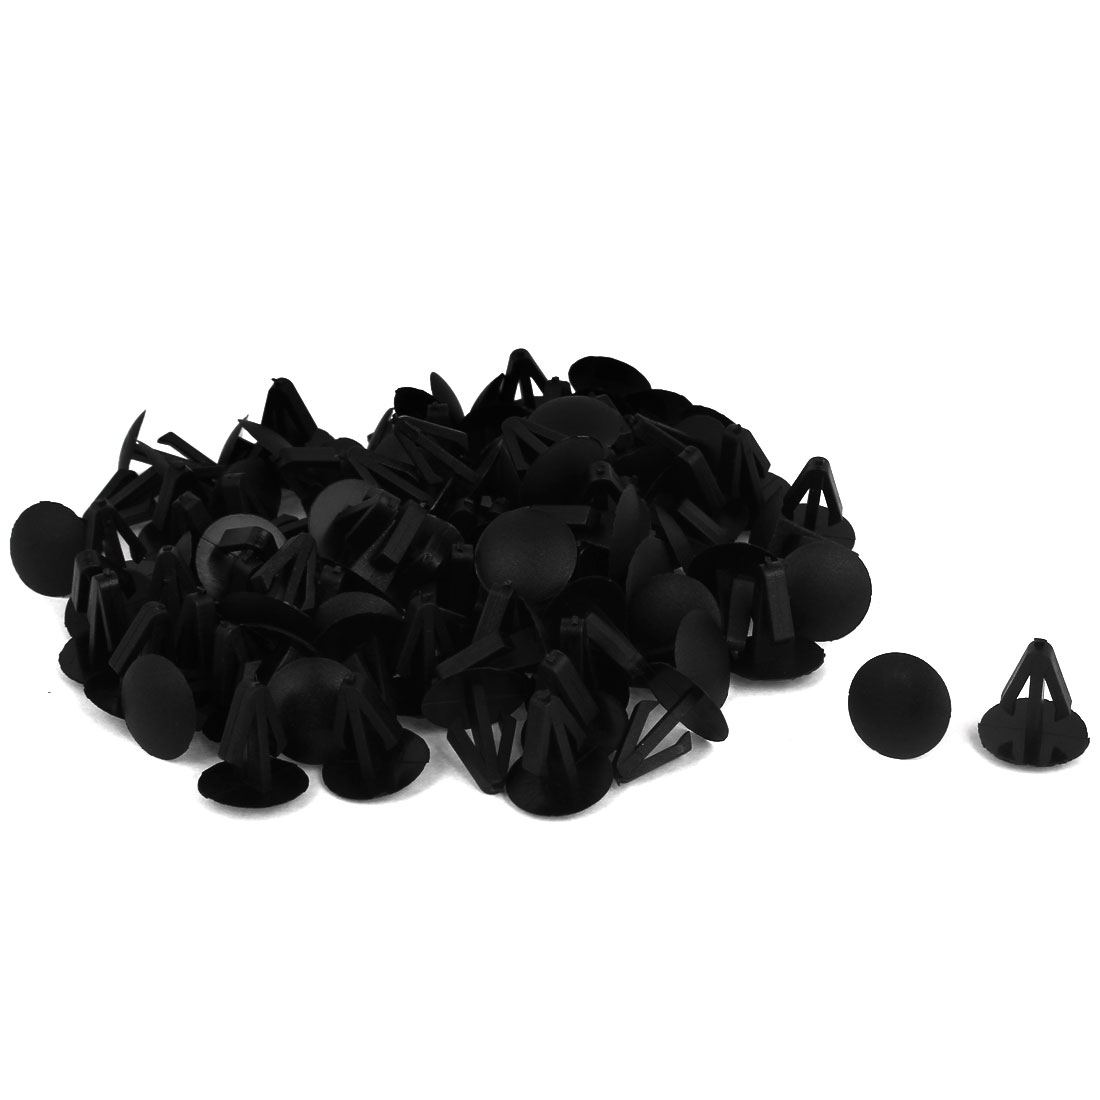 100 Pcs Black Plastic Rivet Trim Fastener Moulding Clips 9mm x 14mm x 14mm